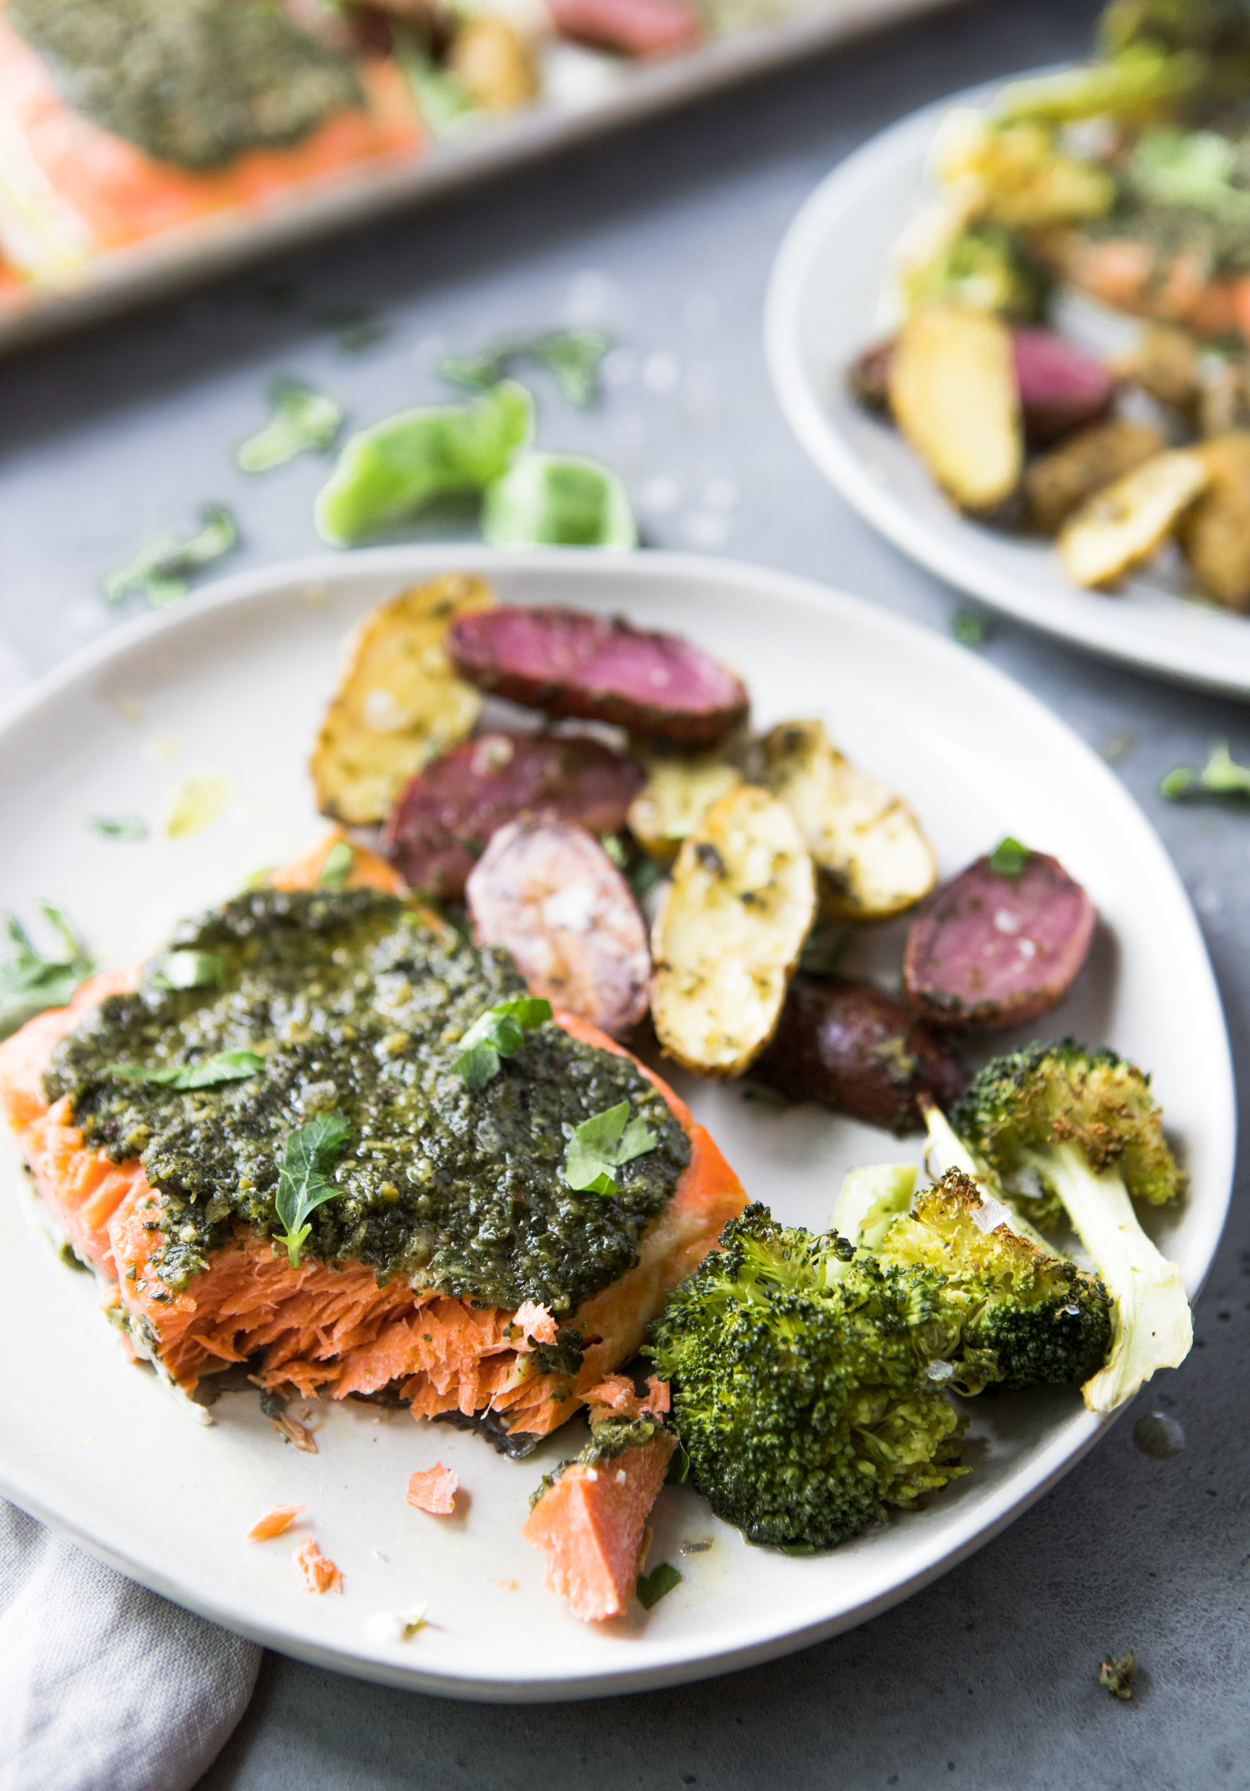 Baked salmon with pesto and broccoli and potatoes on a white round plate